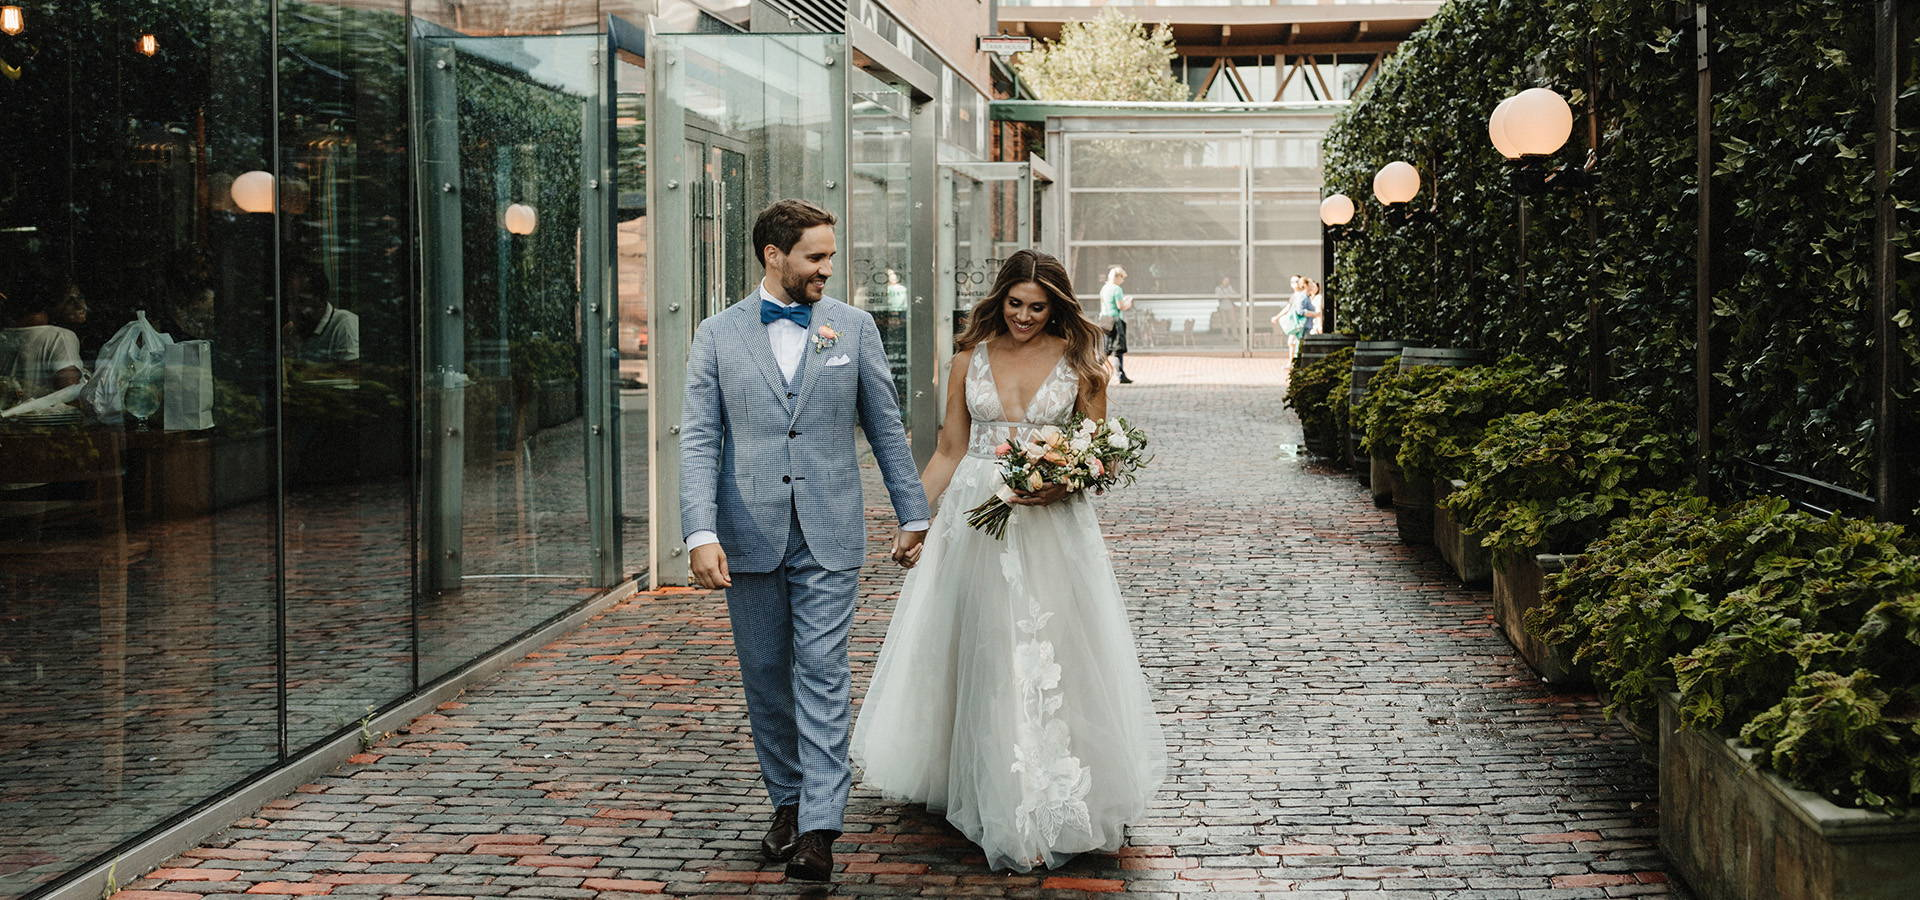 Hero image for Cammie and Ryan's Romantic Summer Wedding at Archeo